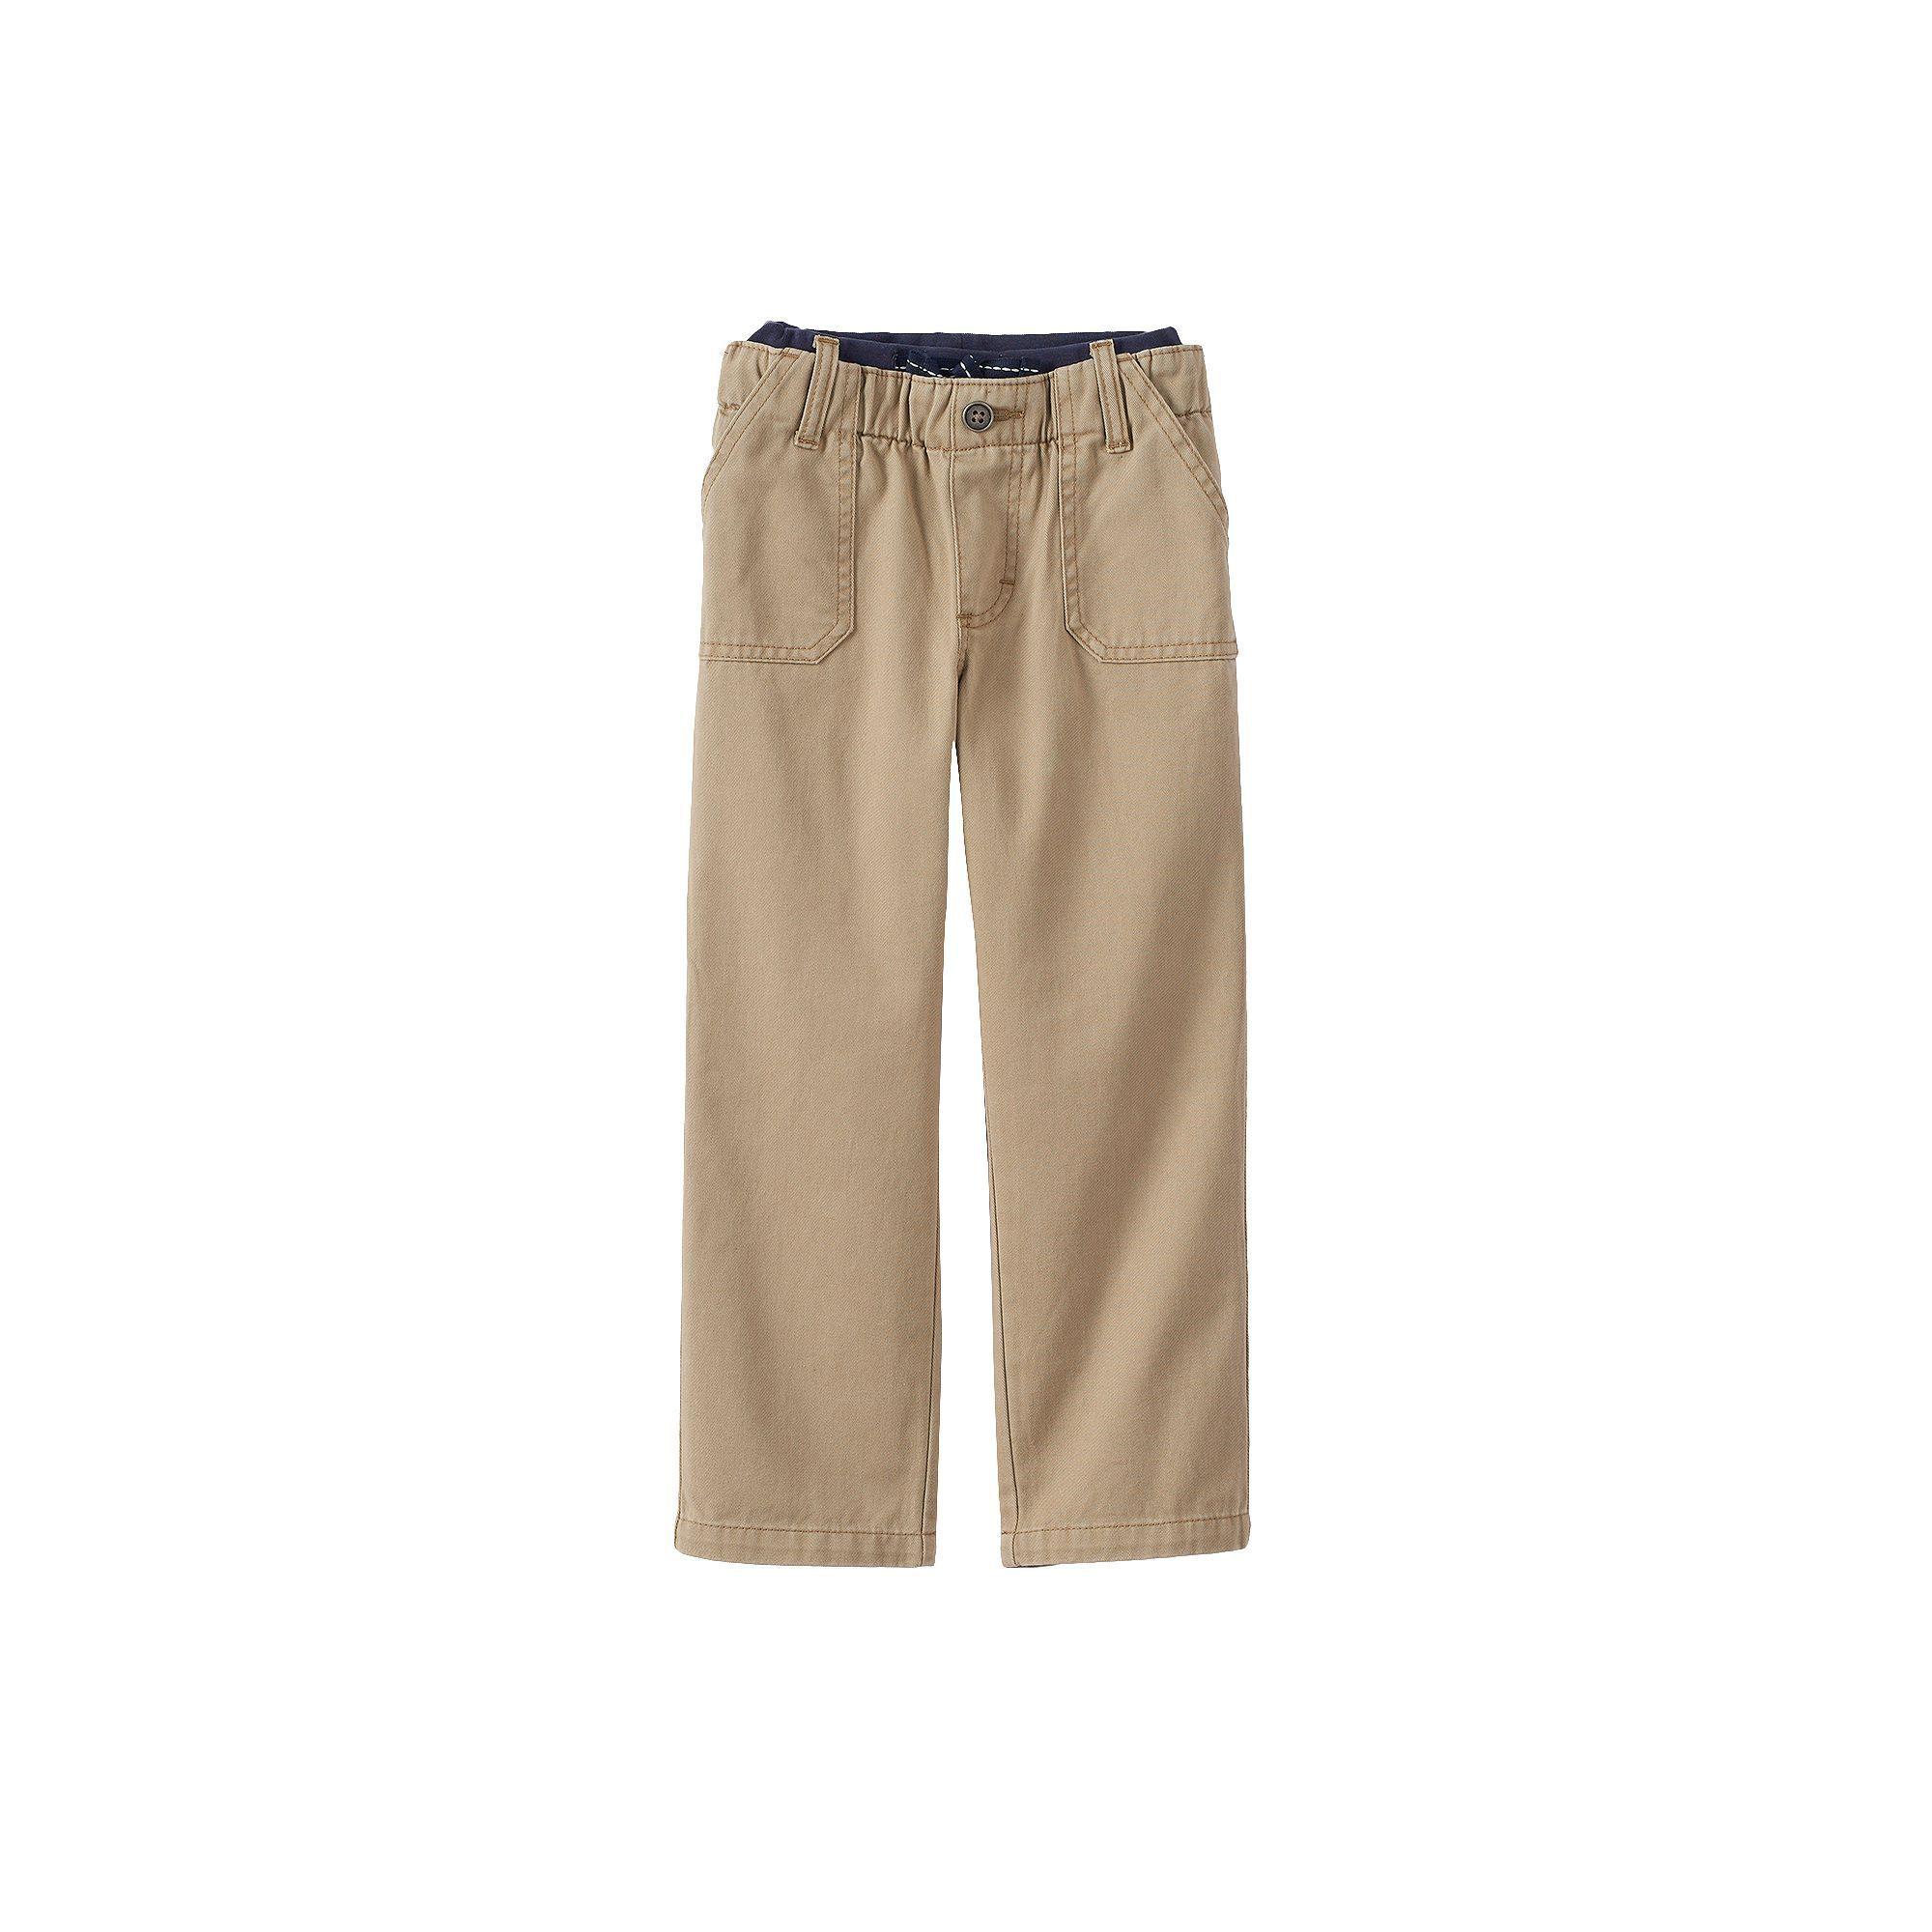 Boys 4-7x Lee Jeans, Size: 4  Ave Med, Beig/Green (Beig/Khaki)